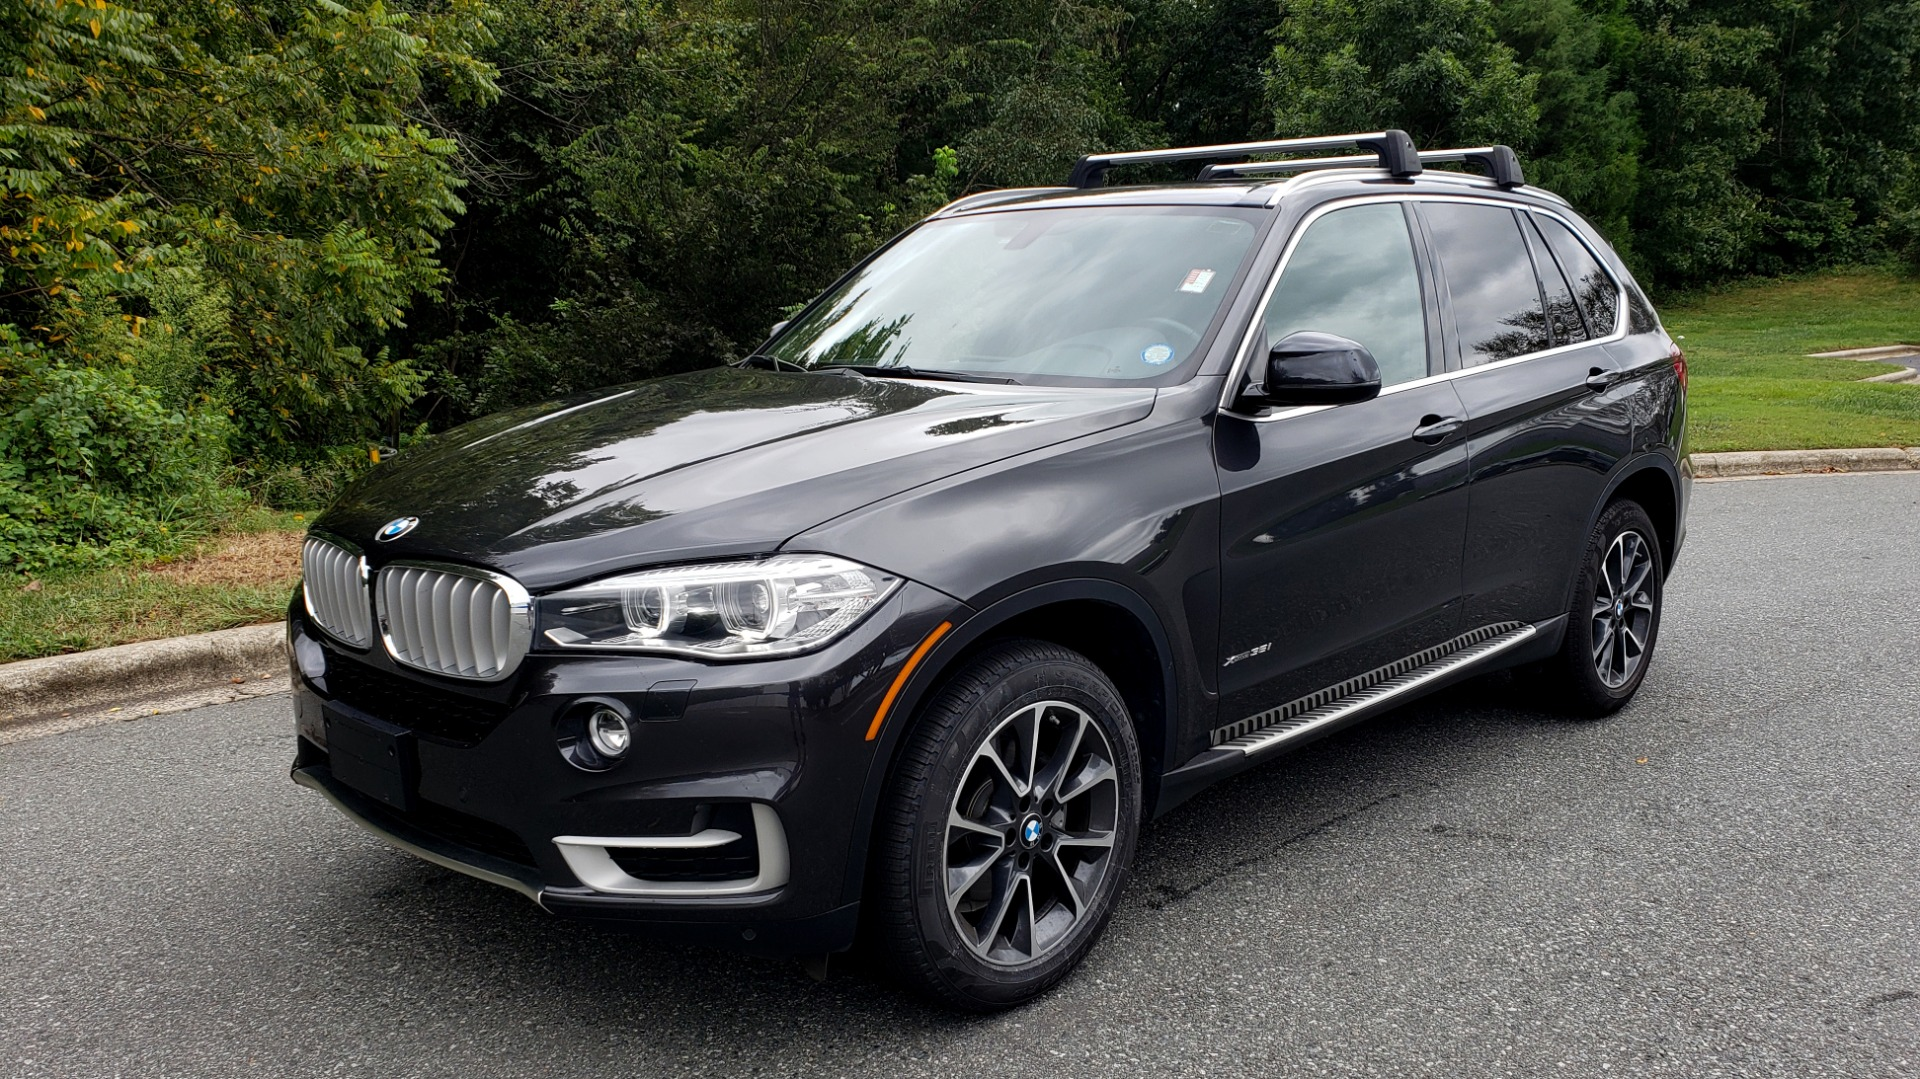 Used 2017 BMW X5 XDRIVE35I / PREM PKG / COLD WTHR / PANO-ROOF / REARVIEW for sale $37,995 at Formula Imports in Charlotte NC 28227 1